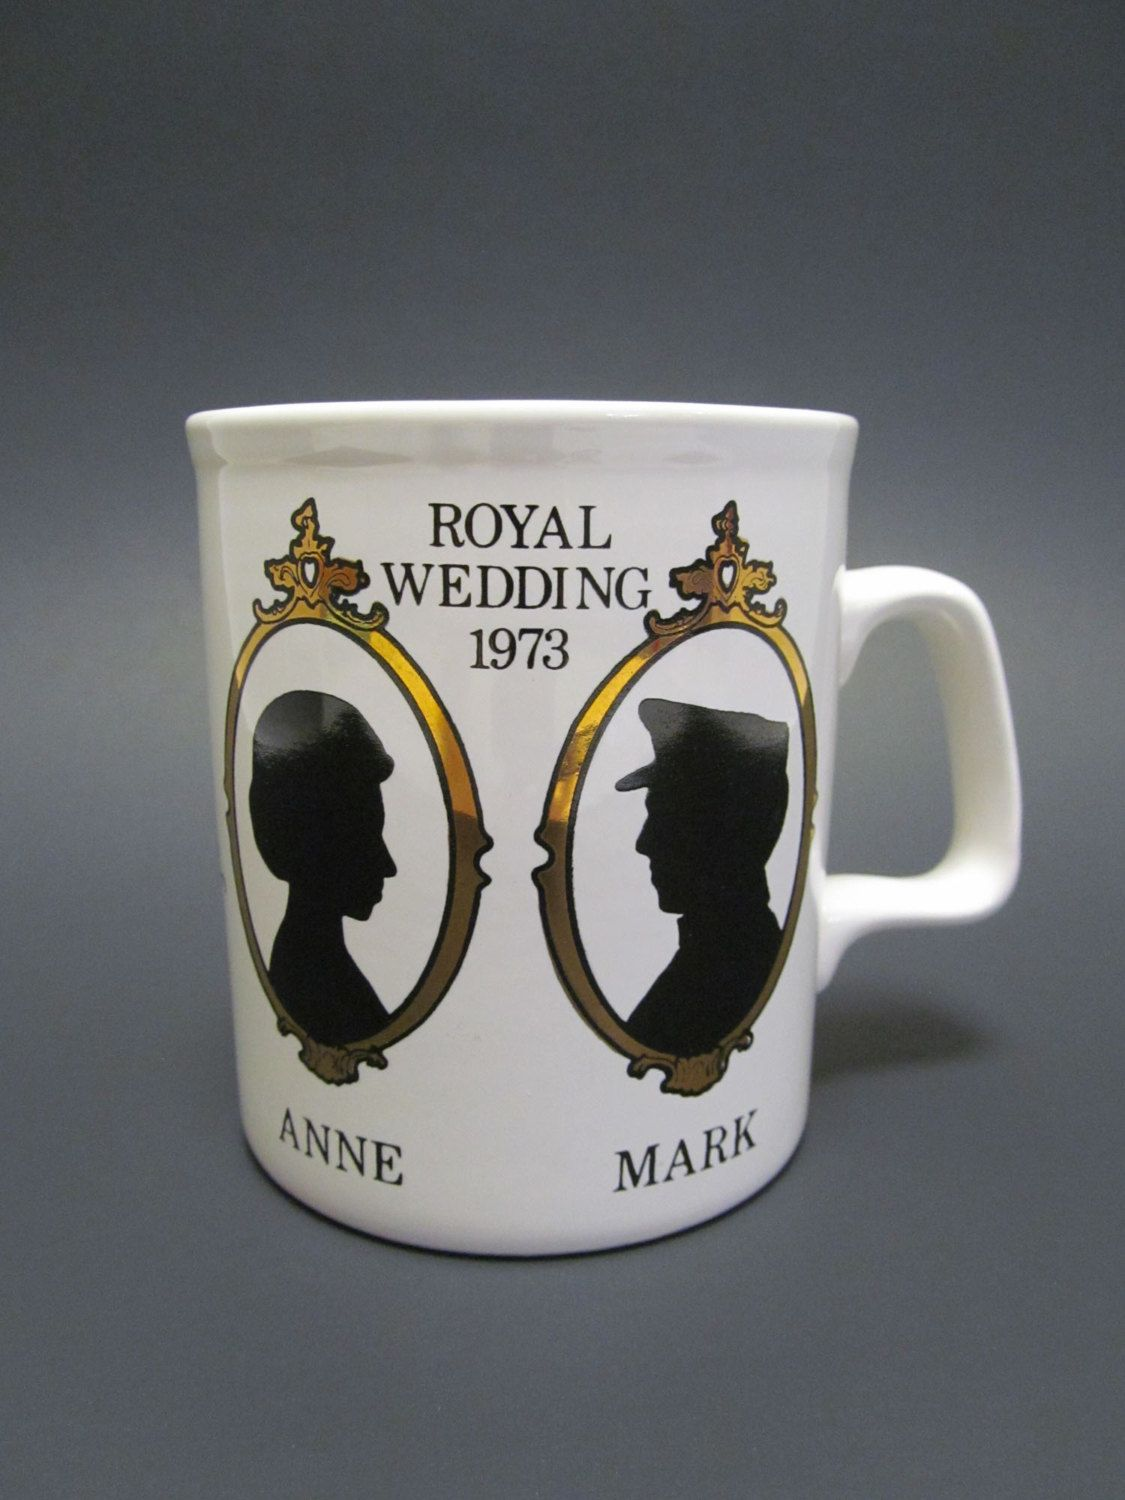 Vintage Princess Anne Royal Wedding Commemorative Mug   1973 Princess Anne  and Mark Phillips Wedding Souvenir Cup   British Royalty Momento by ... 36ca5d1c0